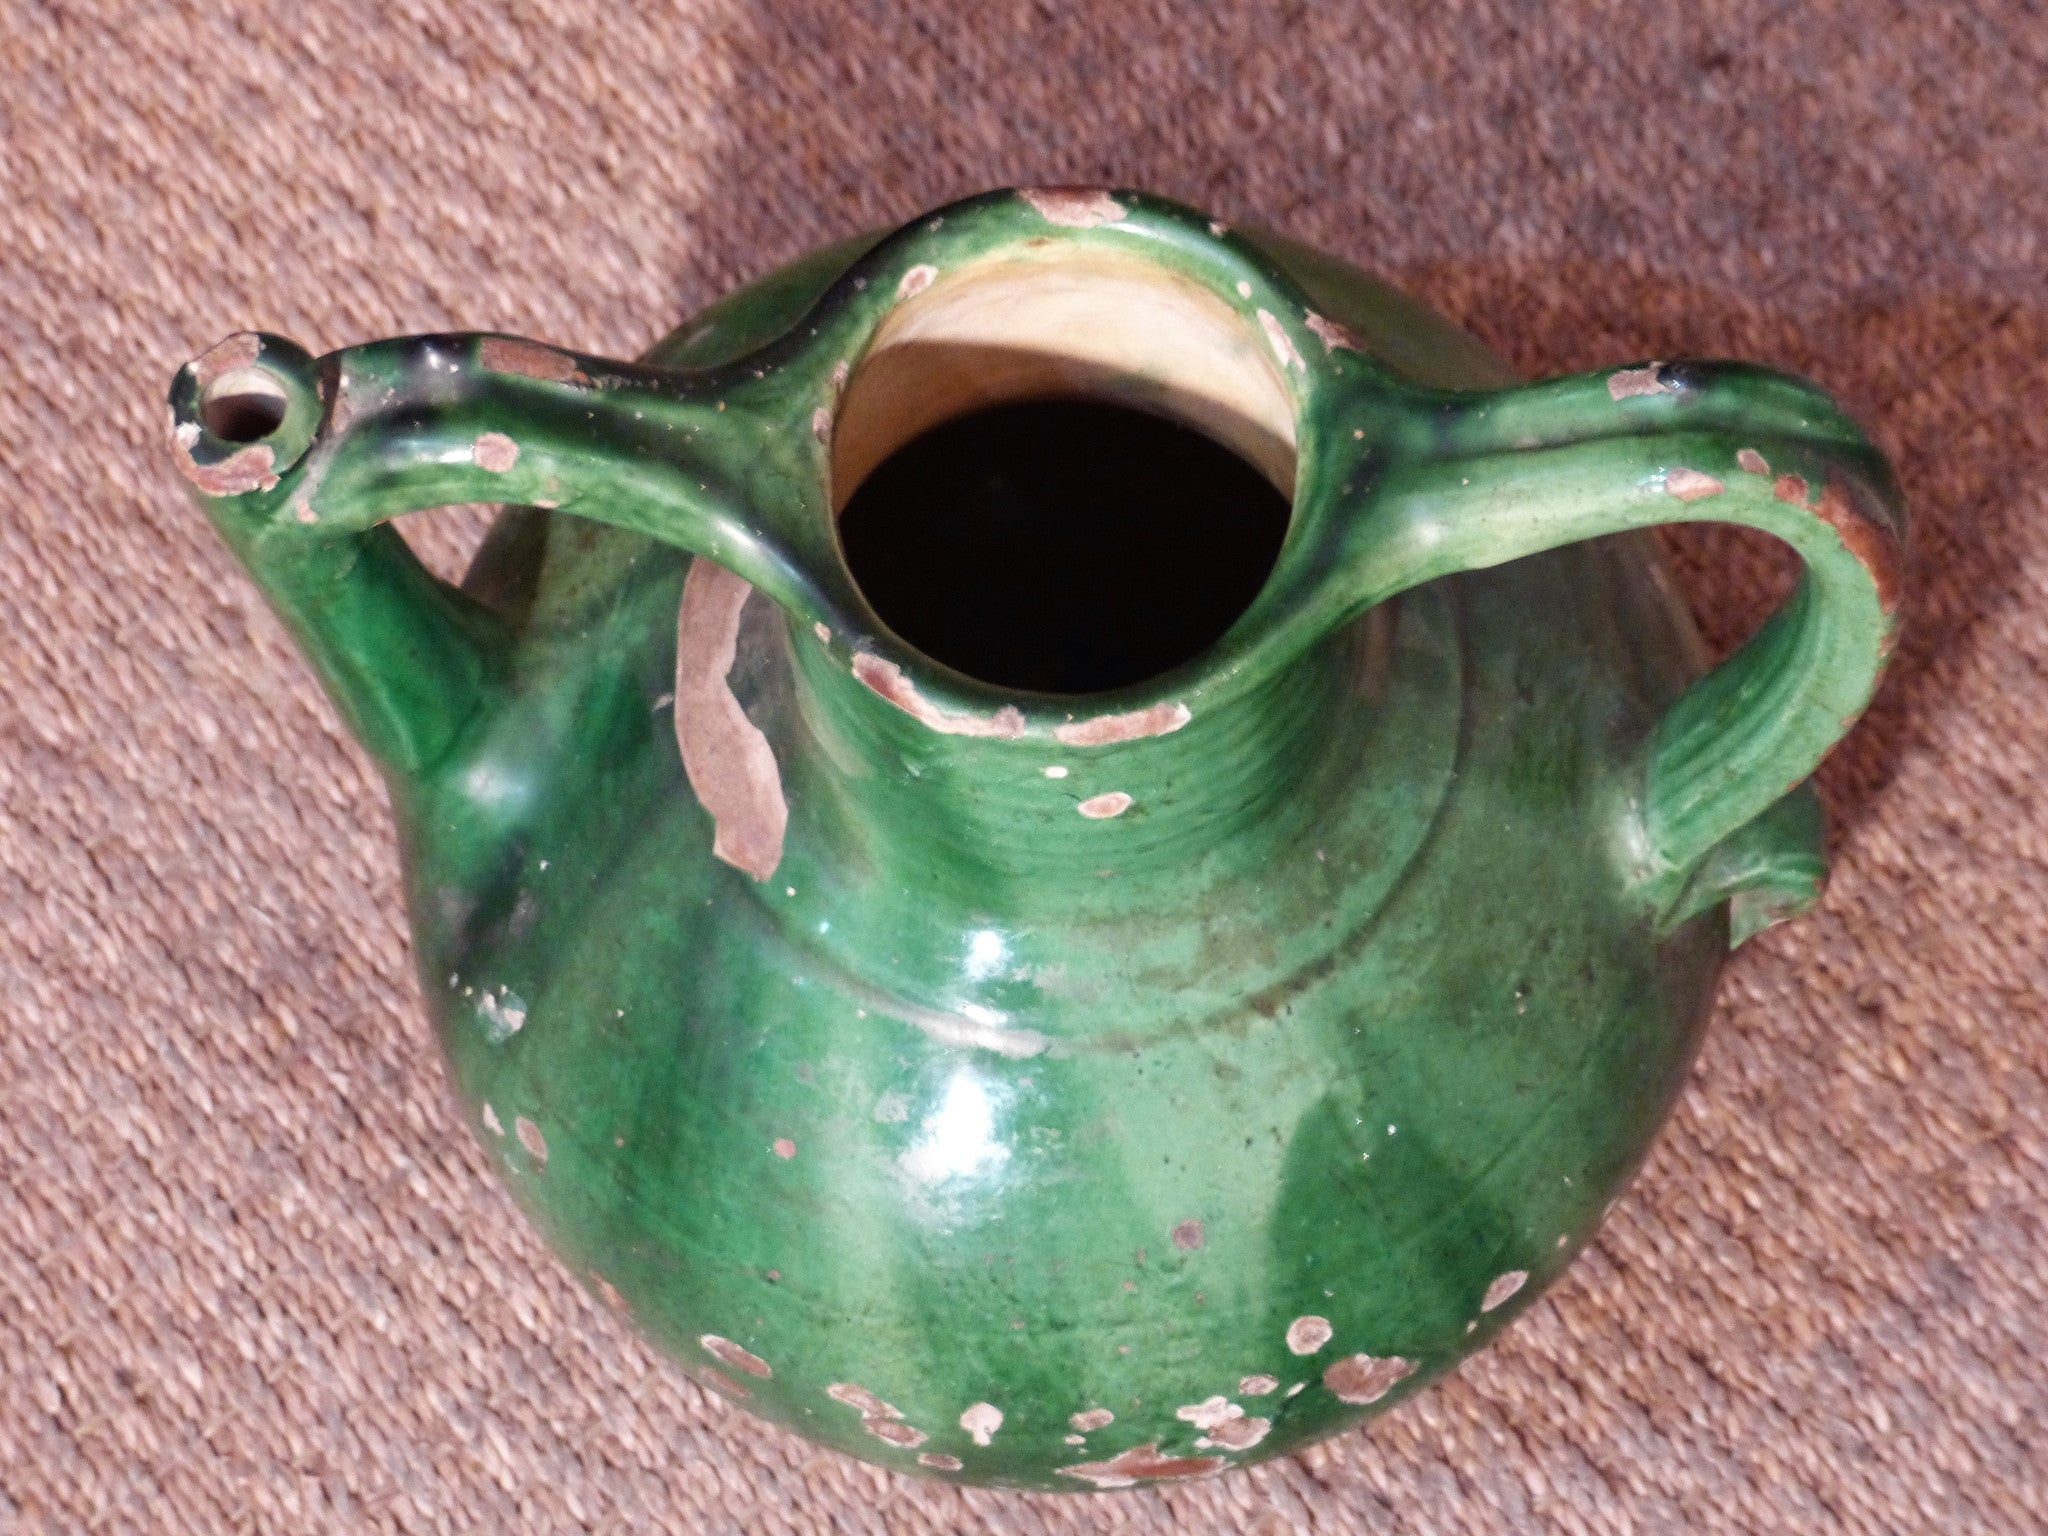 Vintage French pottery water pitcher last minute wedding gift idea fast delivery